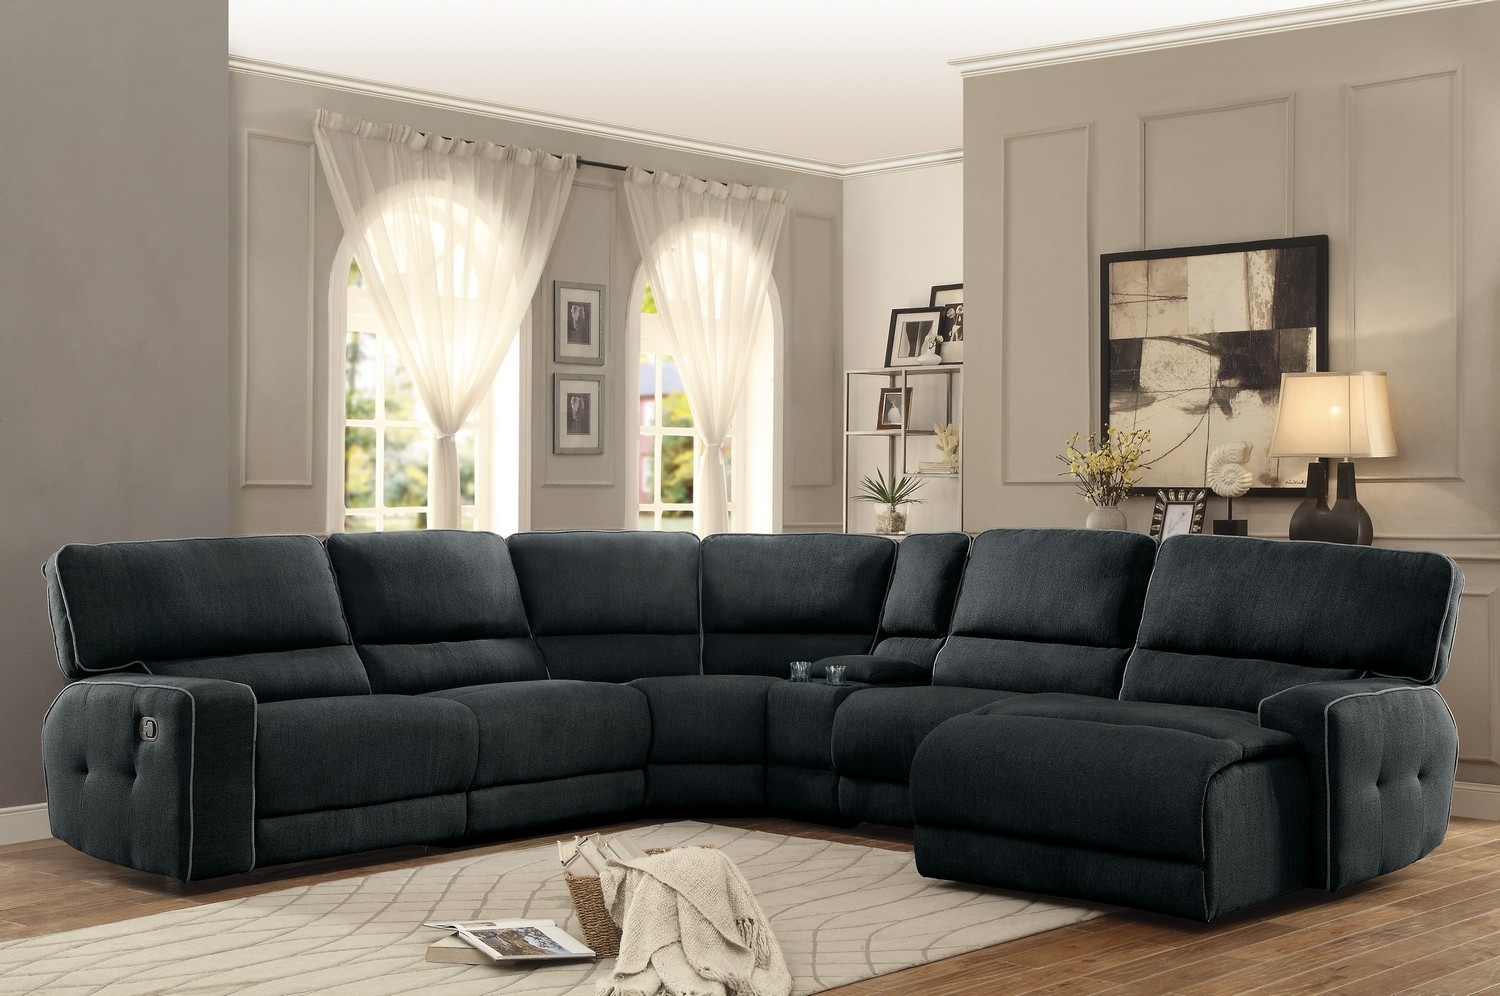 Sectional Sofas Dallas | Catosfera With Dallas Sectional Sofas (Image 9 of 10)